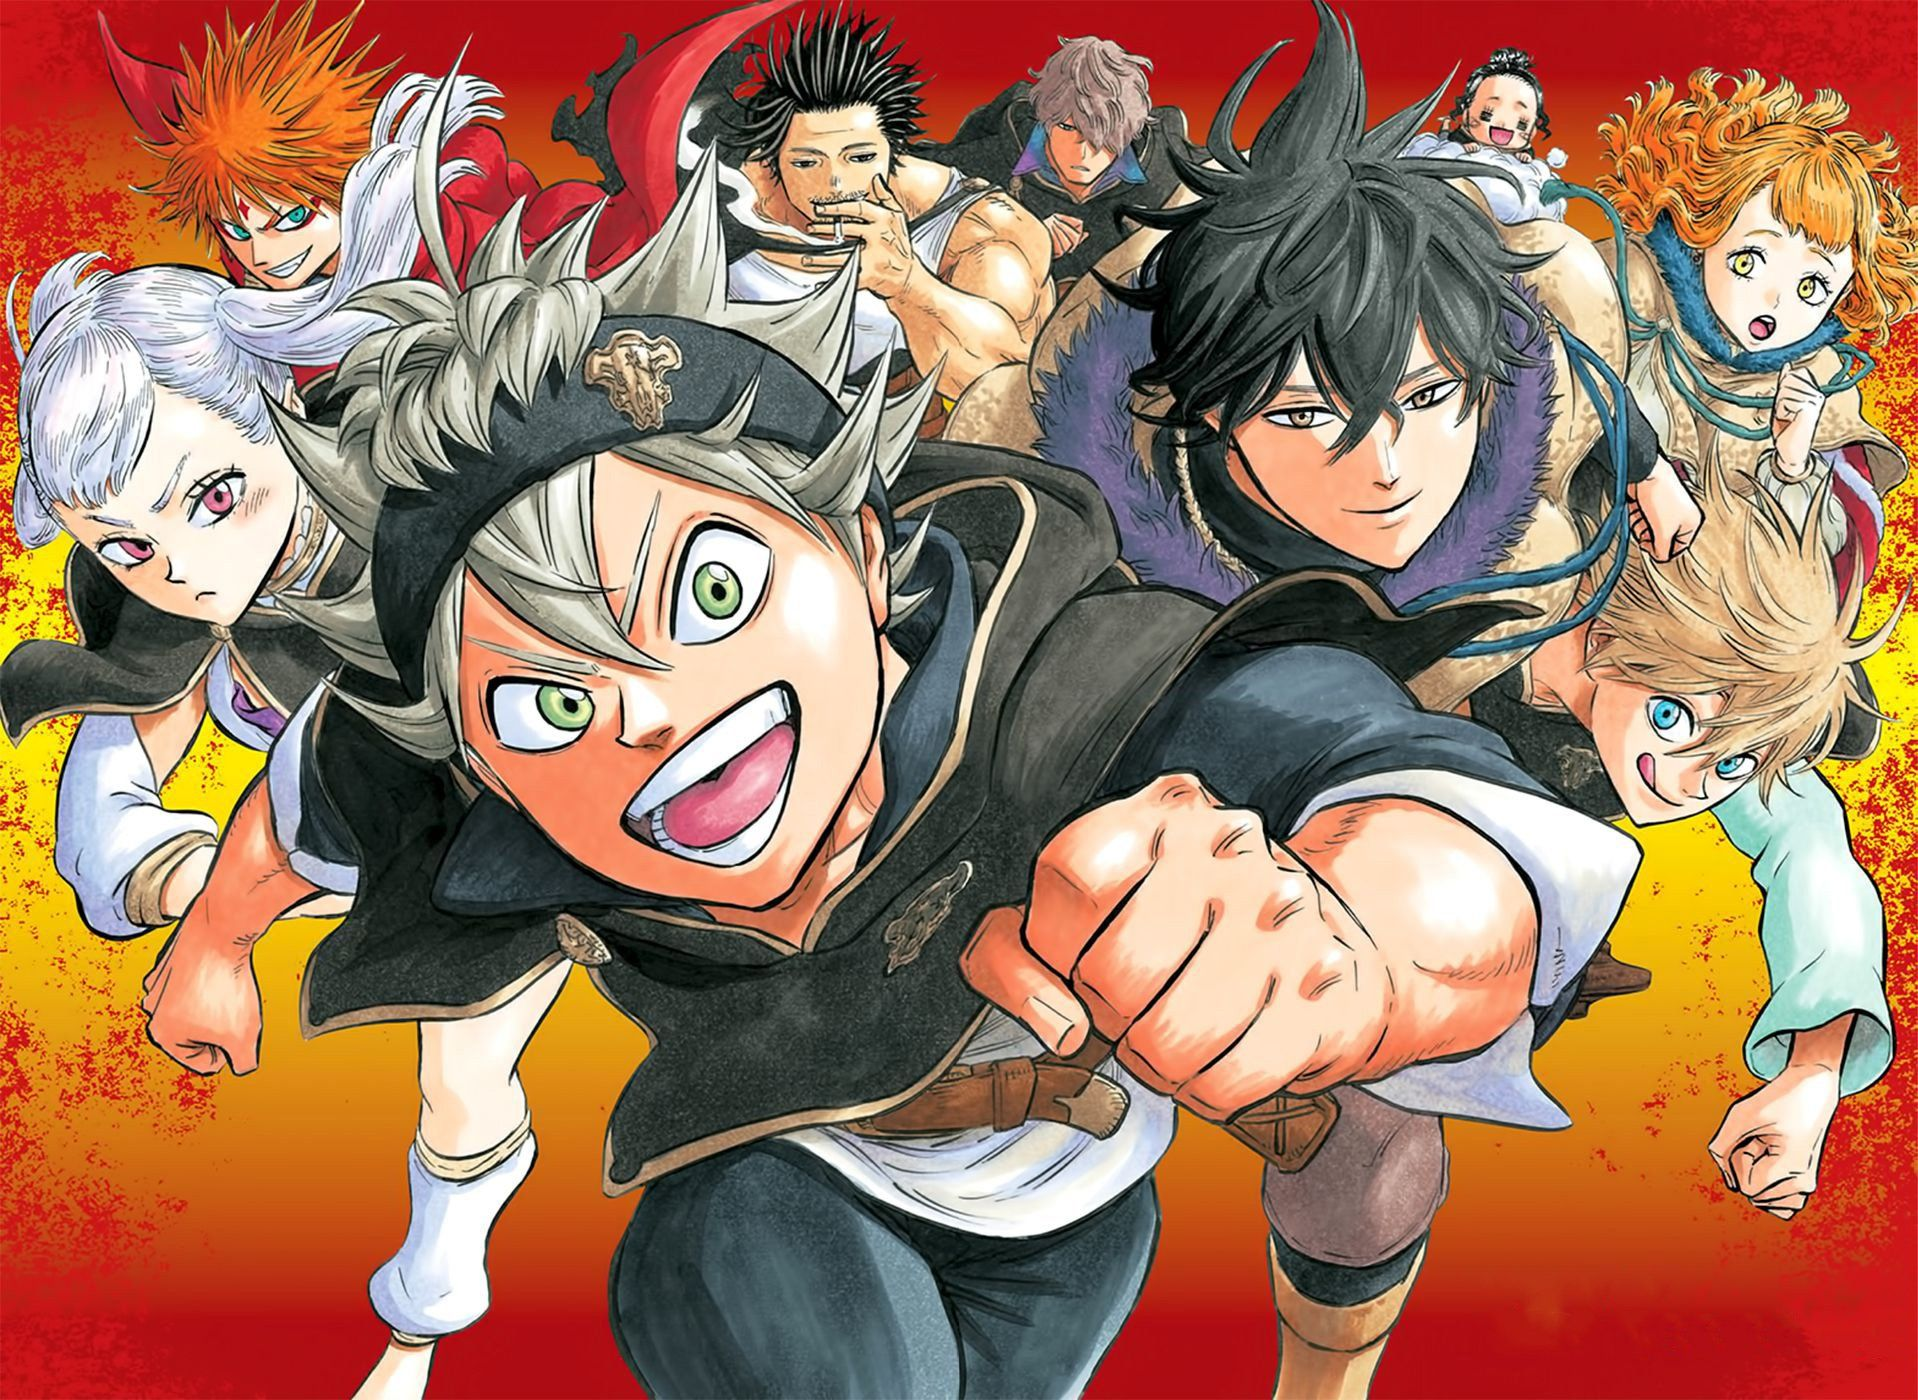 1918x1400 45 Black Clover HD Wallpapers   Background Images - Wallpaper Abyss